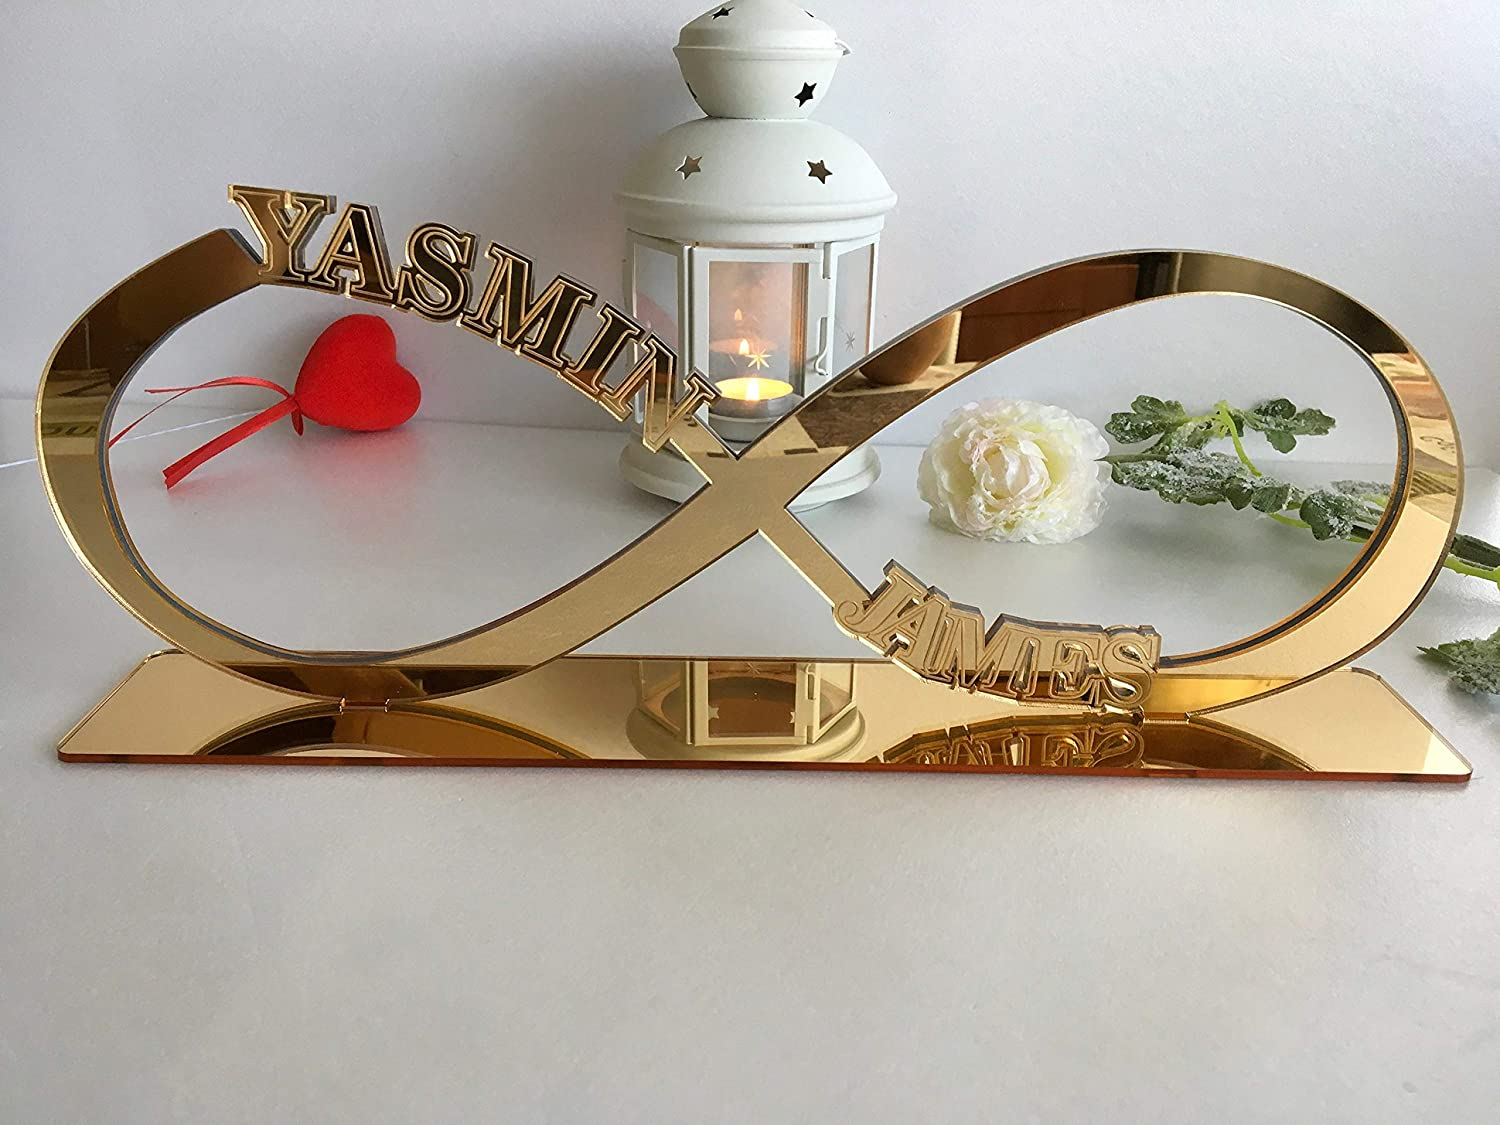 Infinity Table Sign with First Names Infinity Symbol Personalised Wedding Name Freestanding Centerpiece Decorations Gold Event Reception Decor Custom Couples Names Sweetheart Love Anniversary Gift ∞